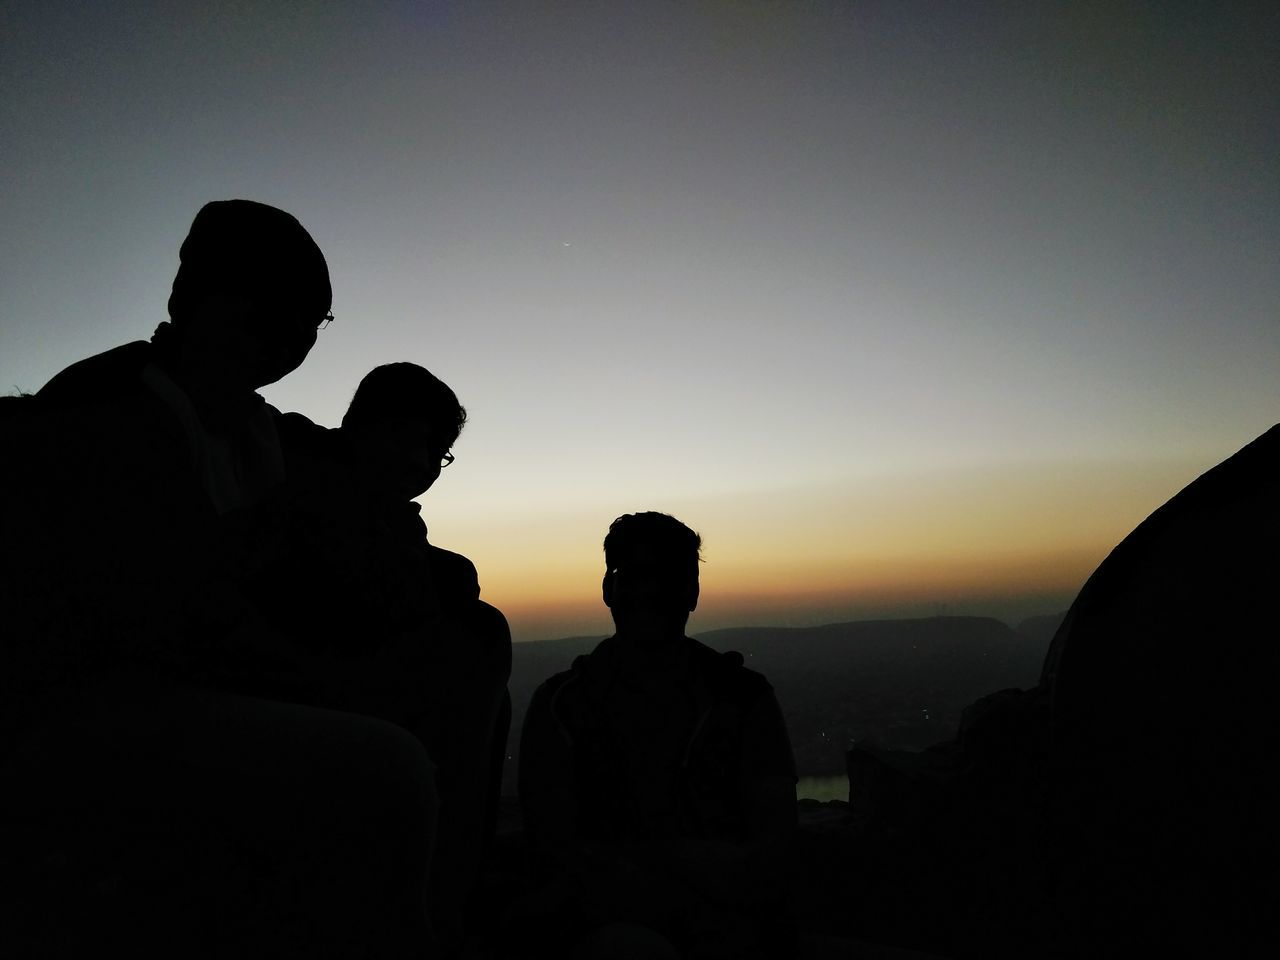 Finding New Frontiers Nahargarh Fort Friendship Beauty In Nature Sky Bonding Sunrise Jaipur,India